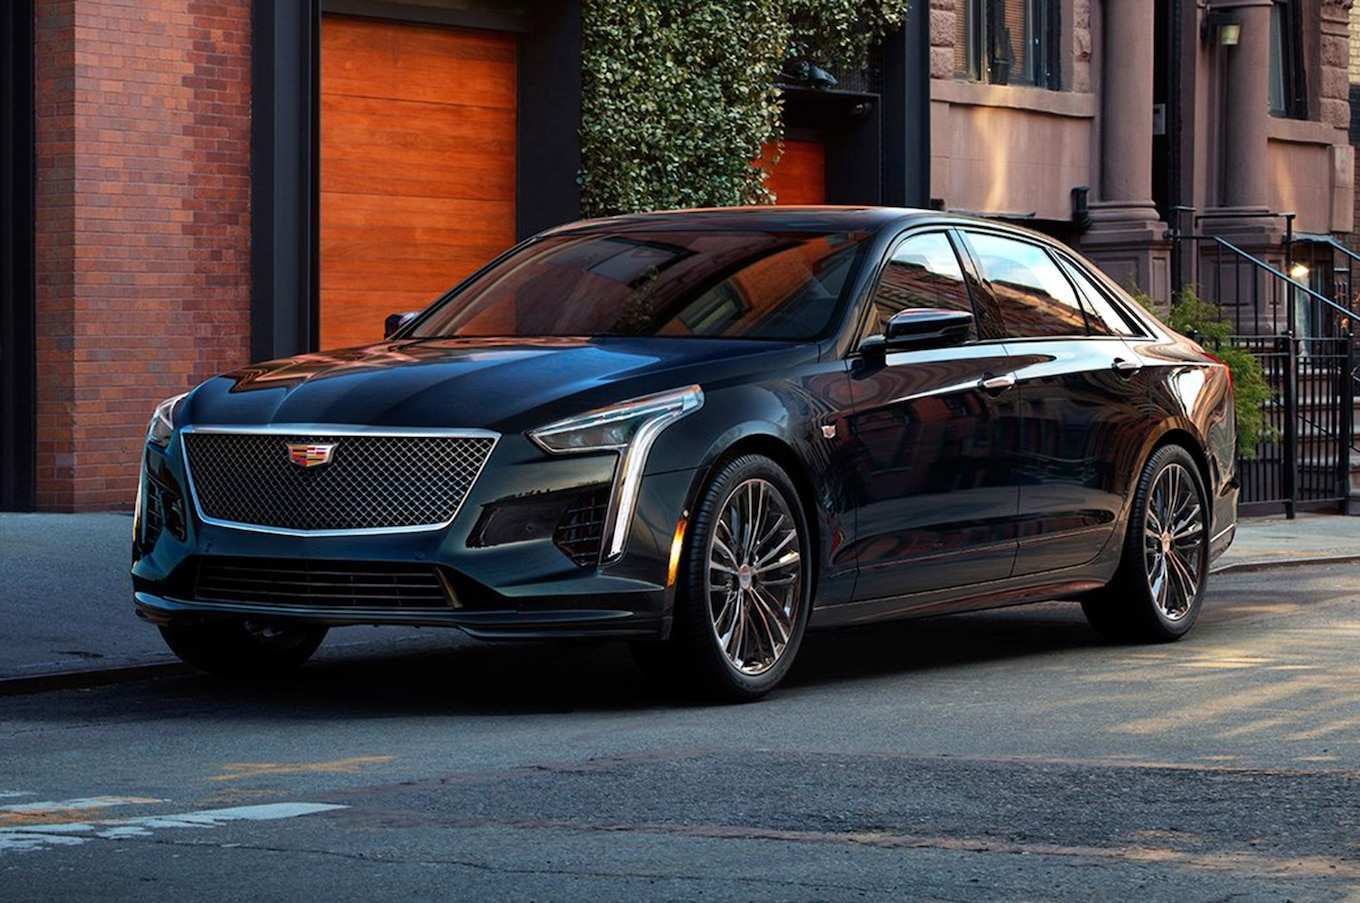 90 New 2019 Cadillac Ct5 Research New with 2019 Cadillac Ct5